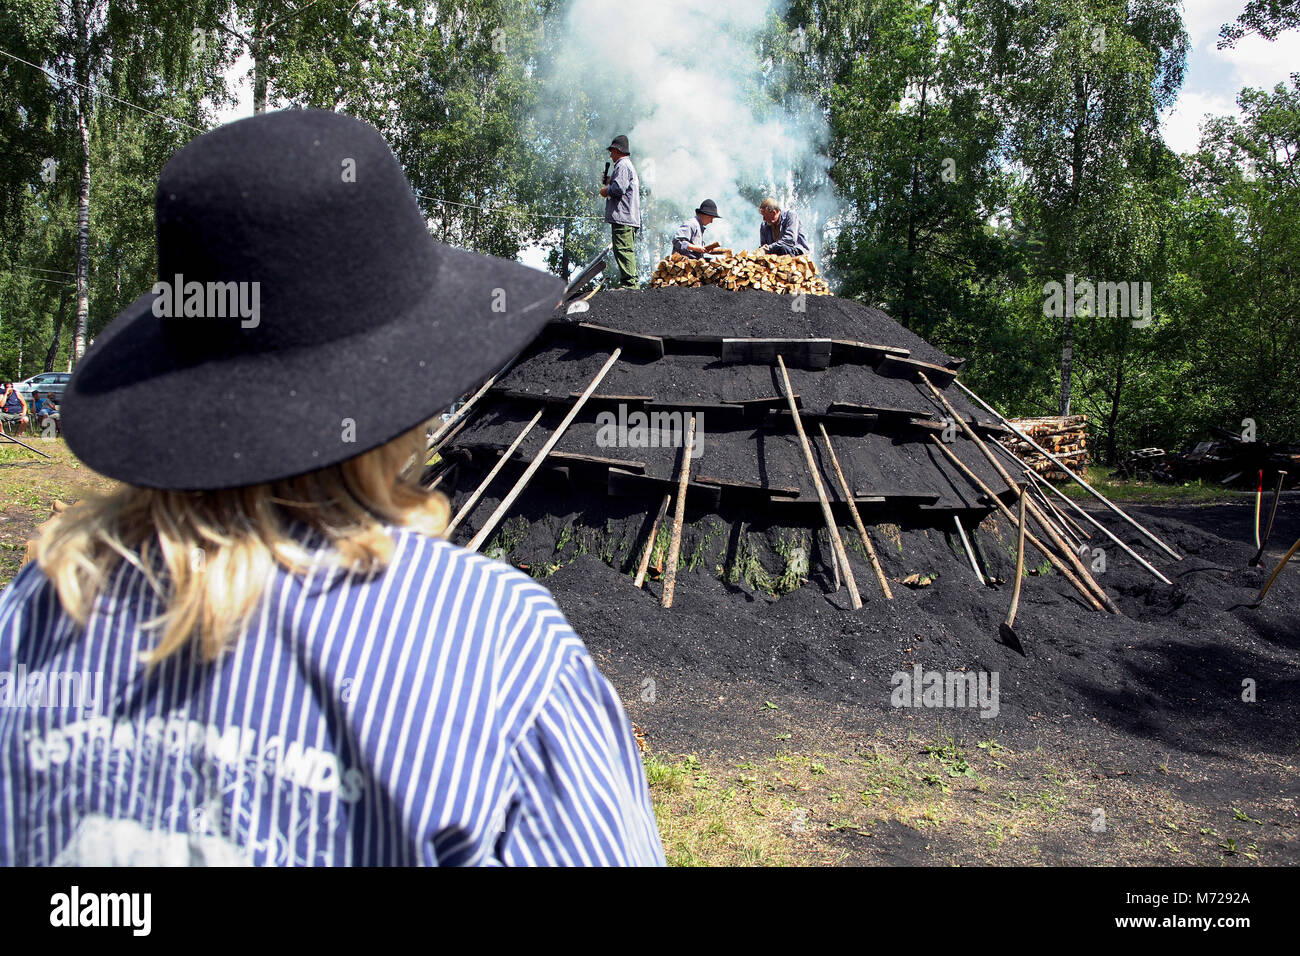 CHARCOAL BURNERS start a Charcoal stack - Stock Image